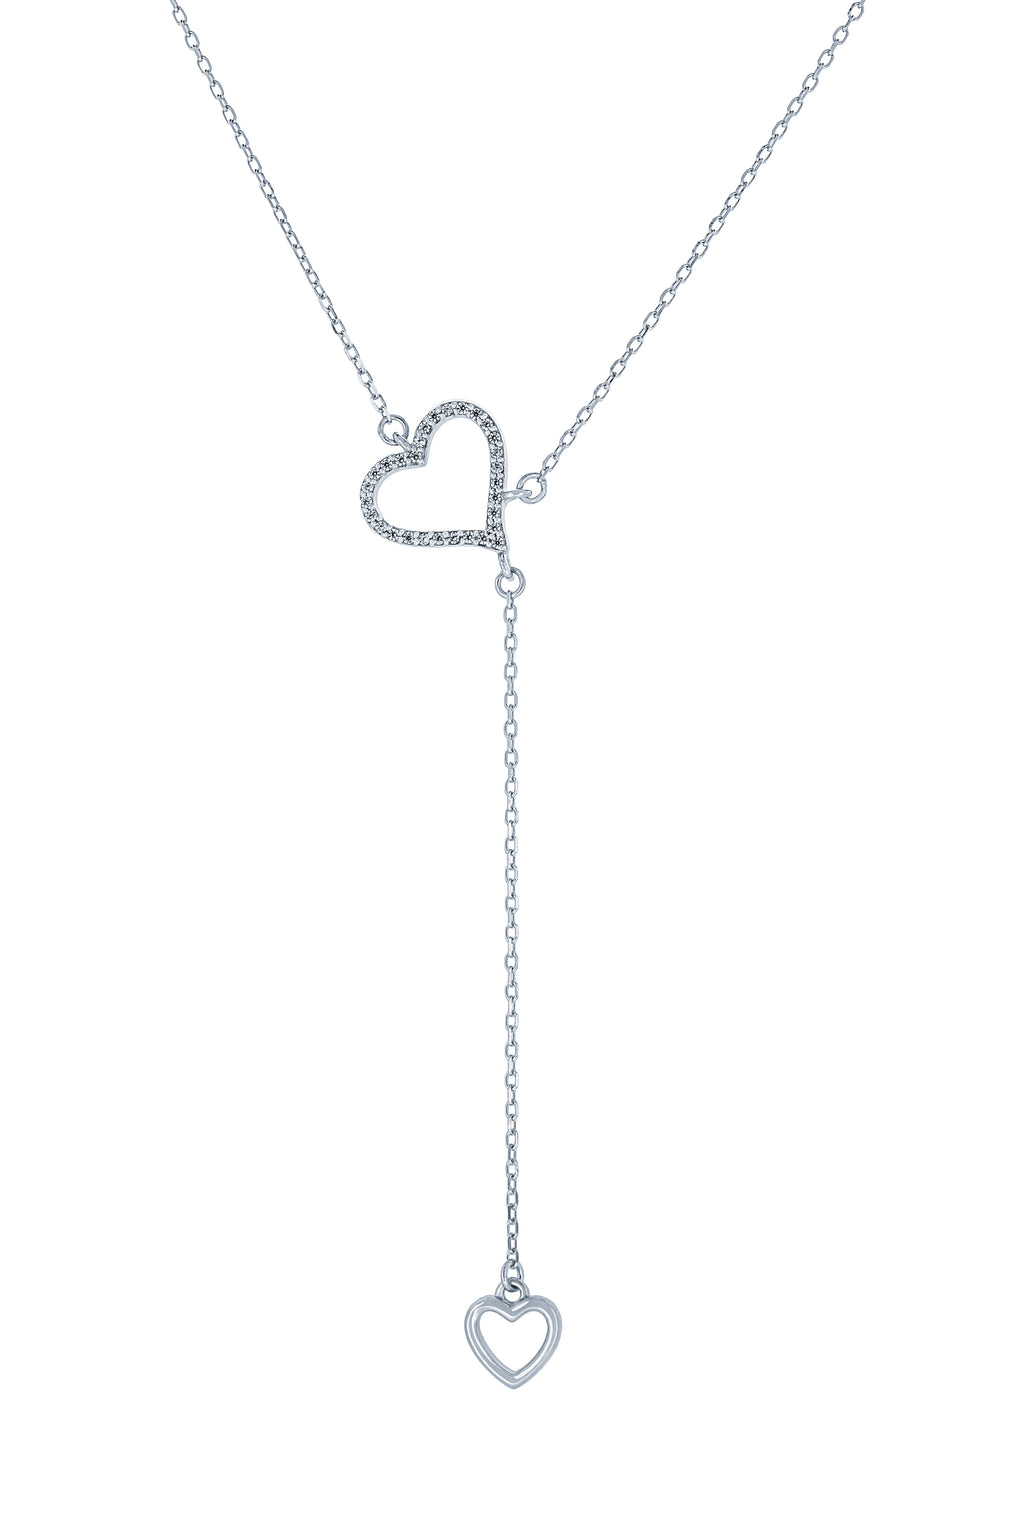 (100072) White Cubic Zirconia Hearts Necklace In Sterling Silver